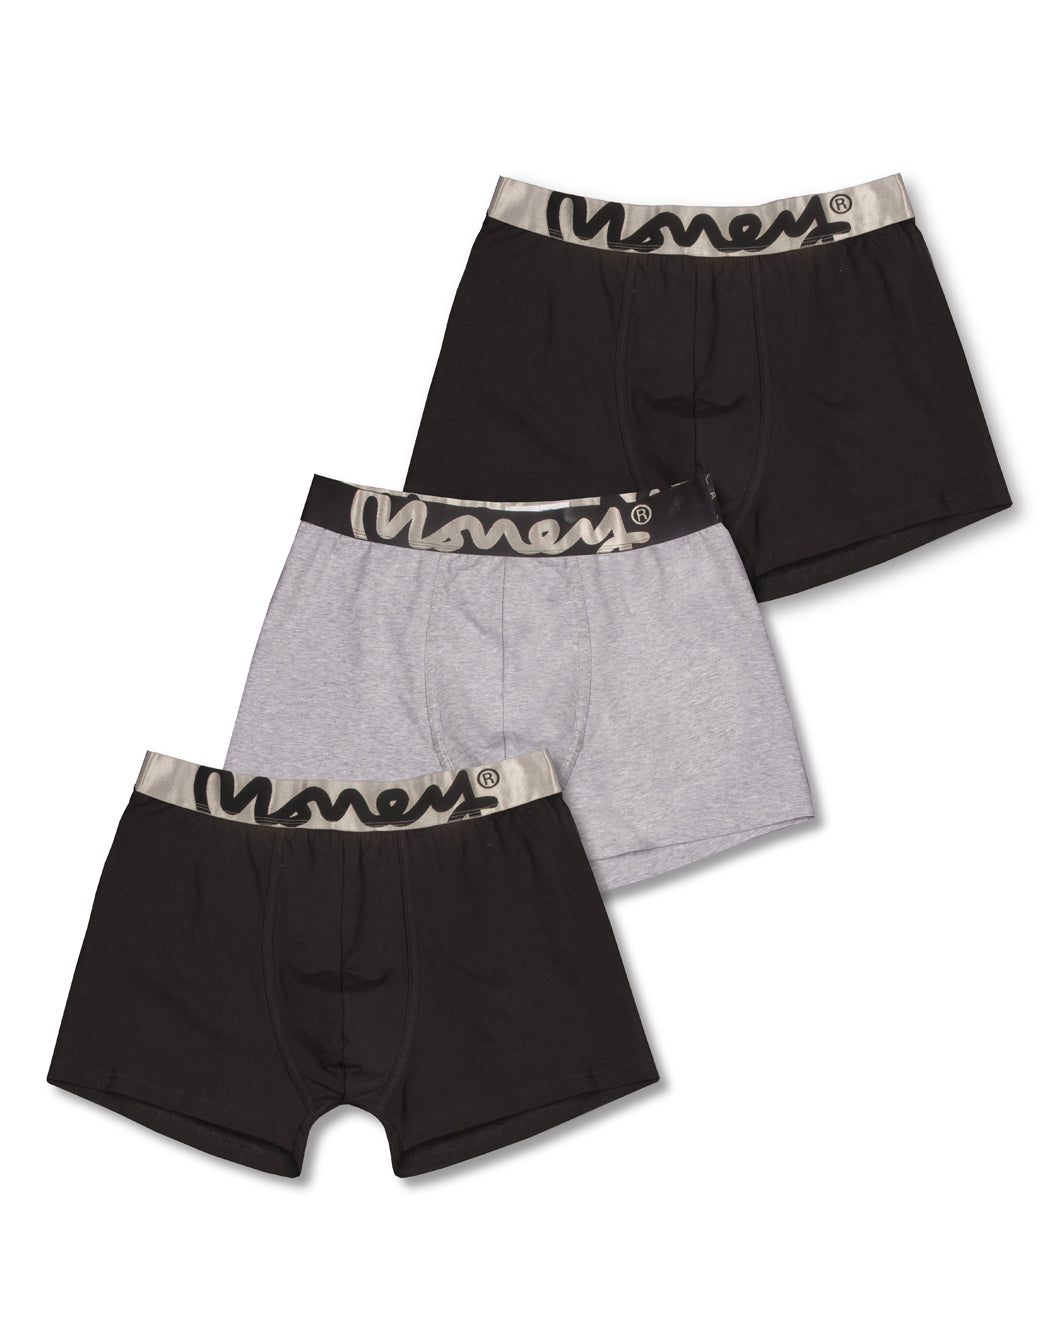 3 PACK MONEY LOGO TRUNKS